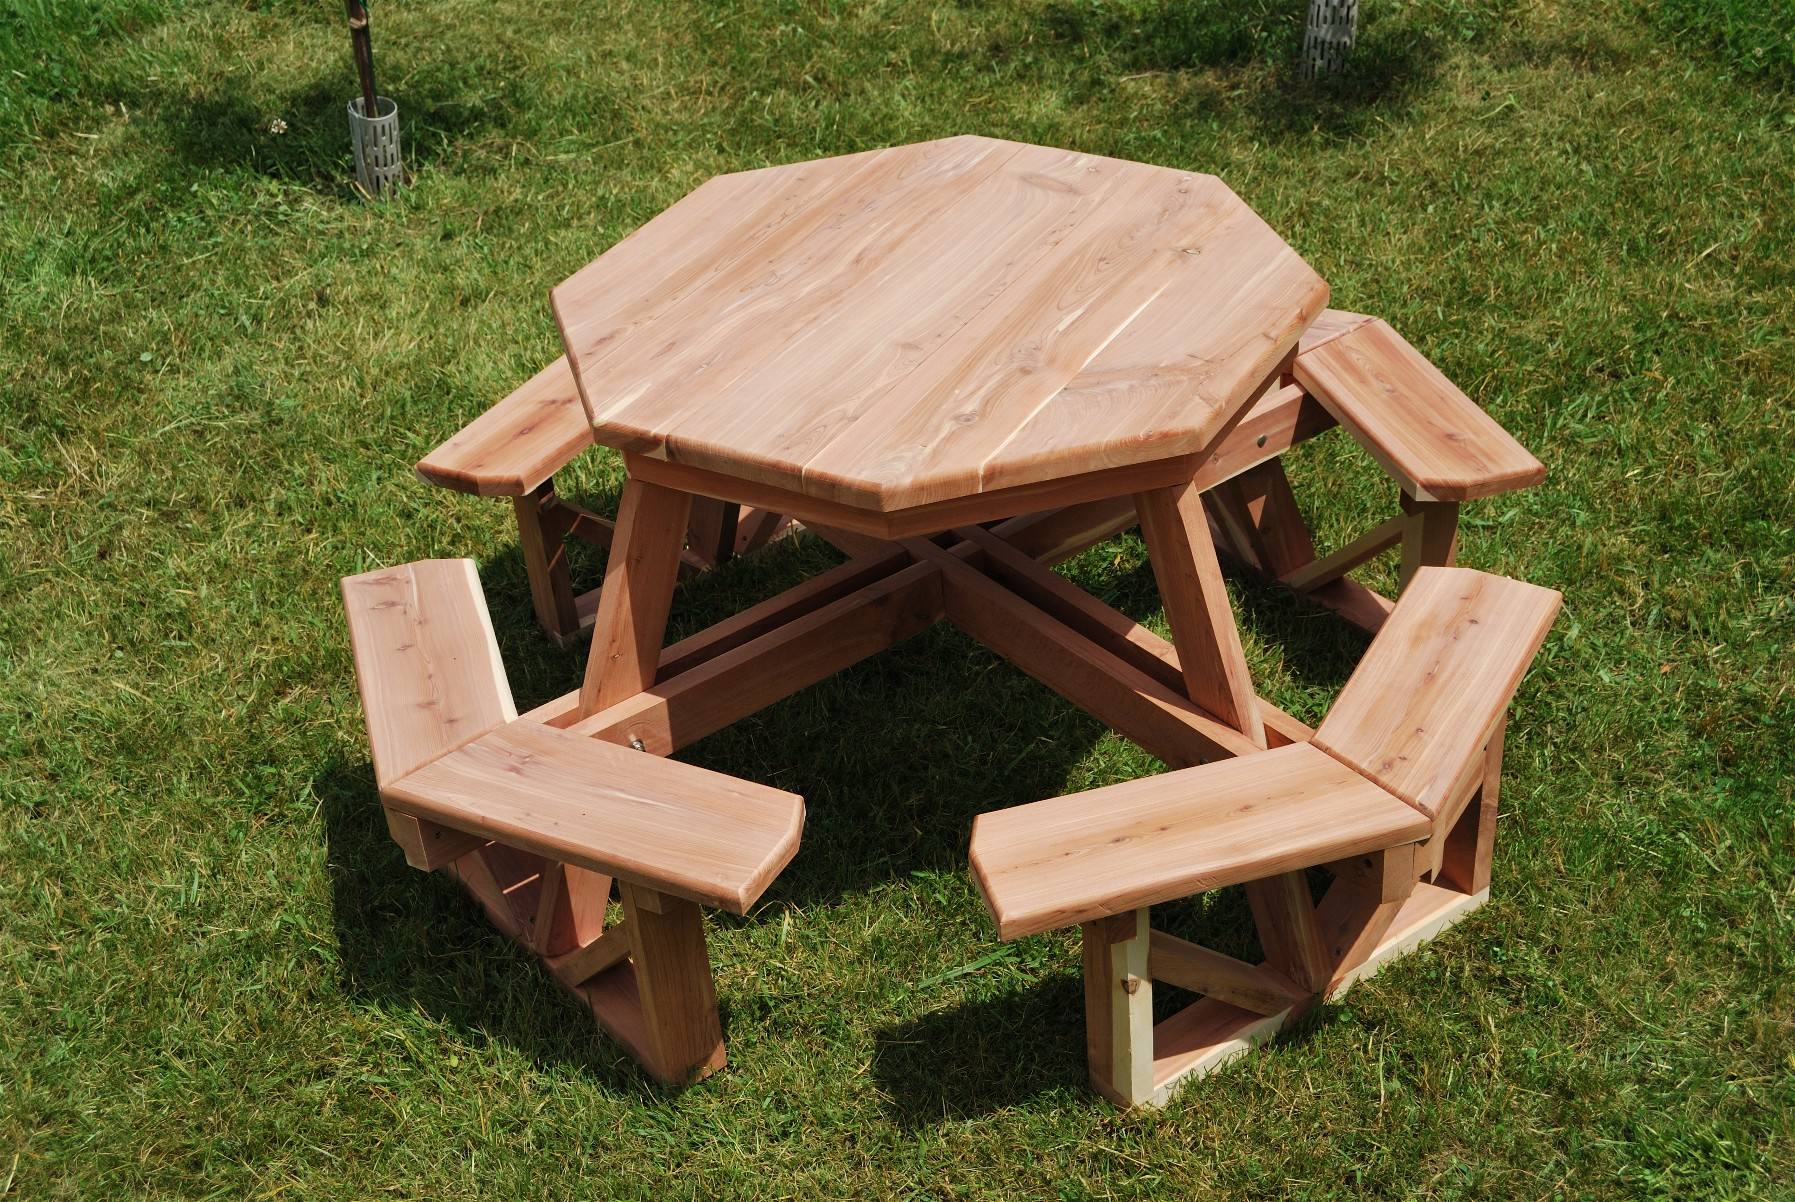 picnic table plans round picnic table plans round picnic table plans